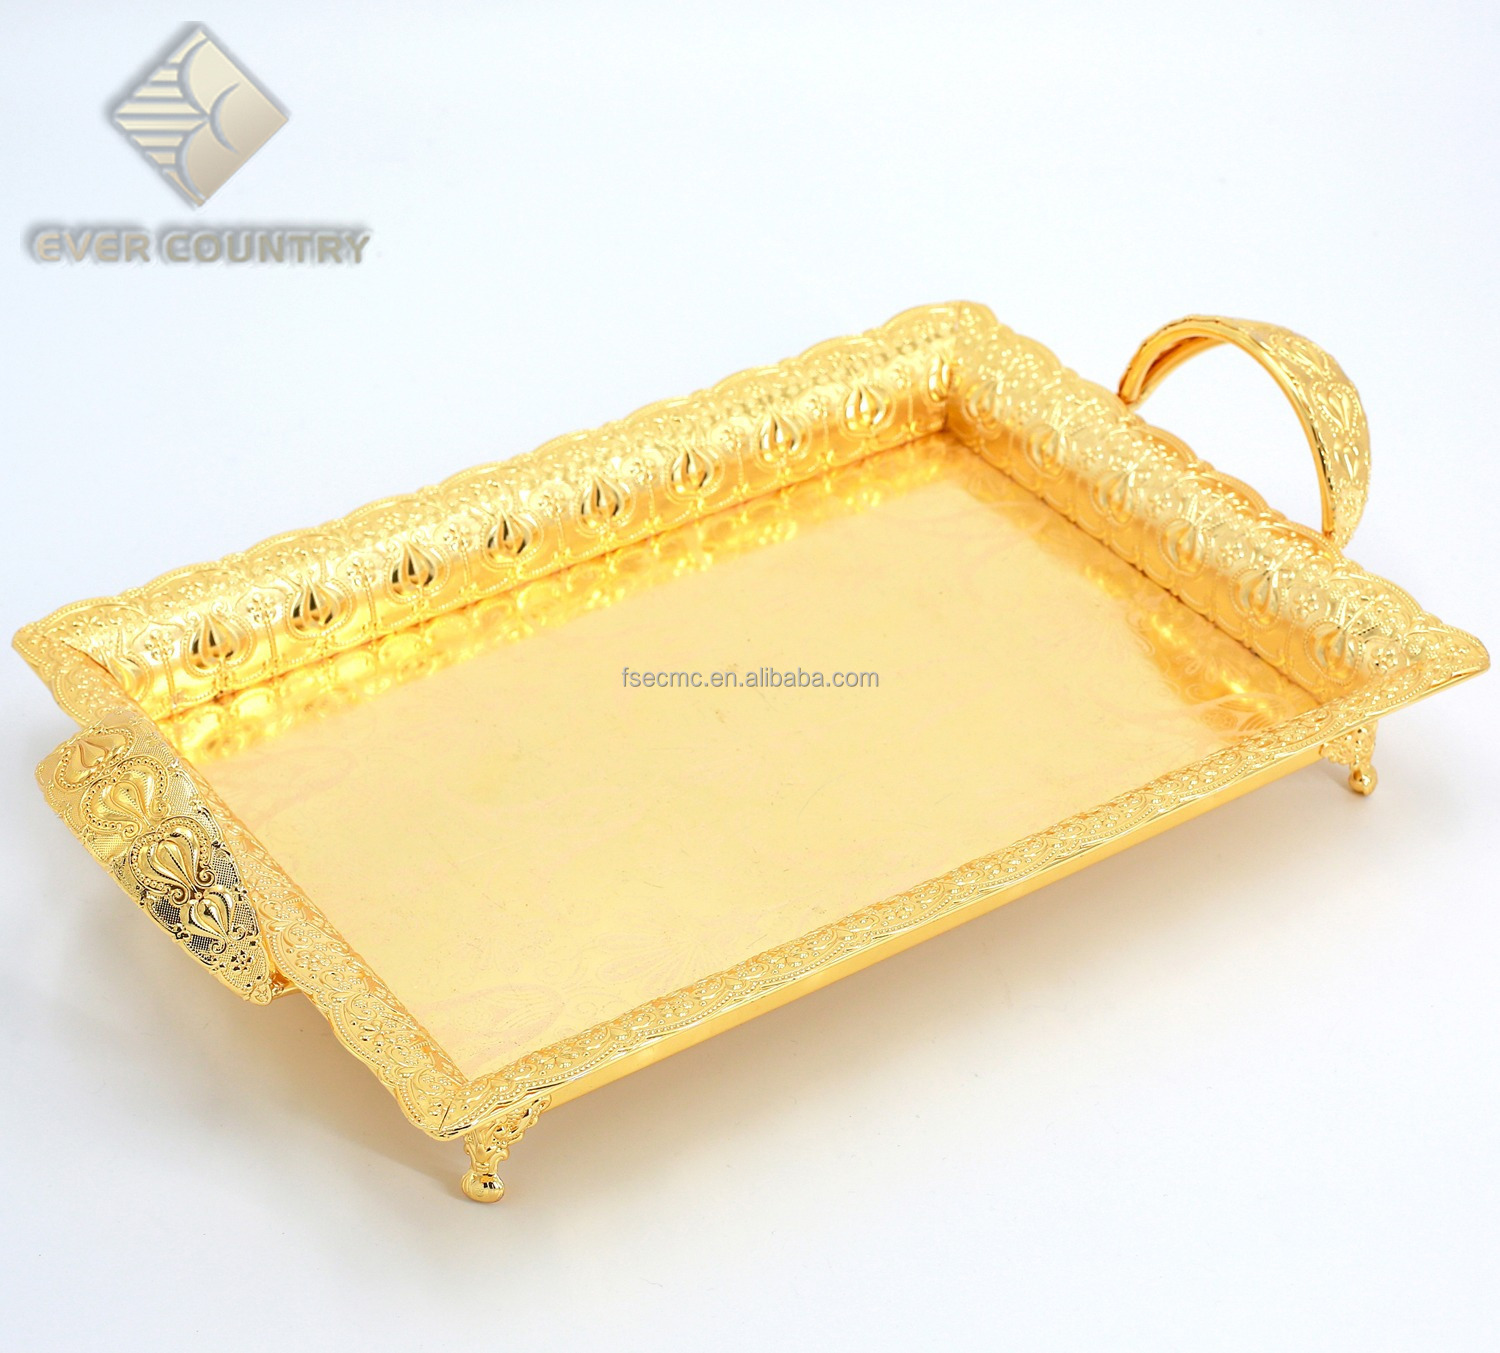 Gold Serving Tray Tulip Design Gold Plated 24 Inch Rectangle Metal Serving Tray With Handle Buy Tea And Coffee Set Chocolate Dish Silver Plated Plate Product On